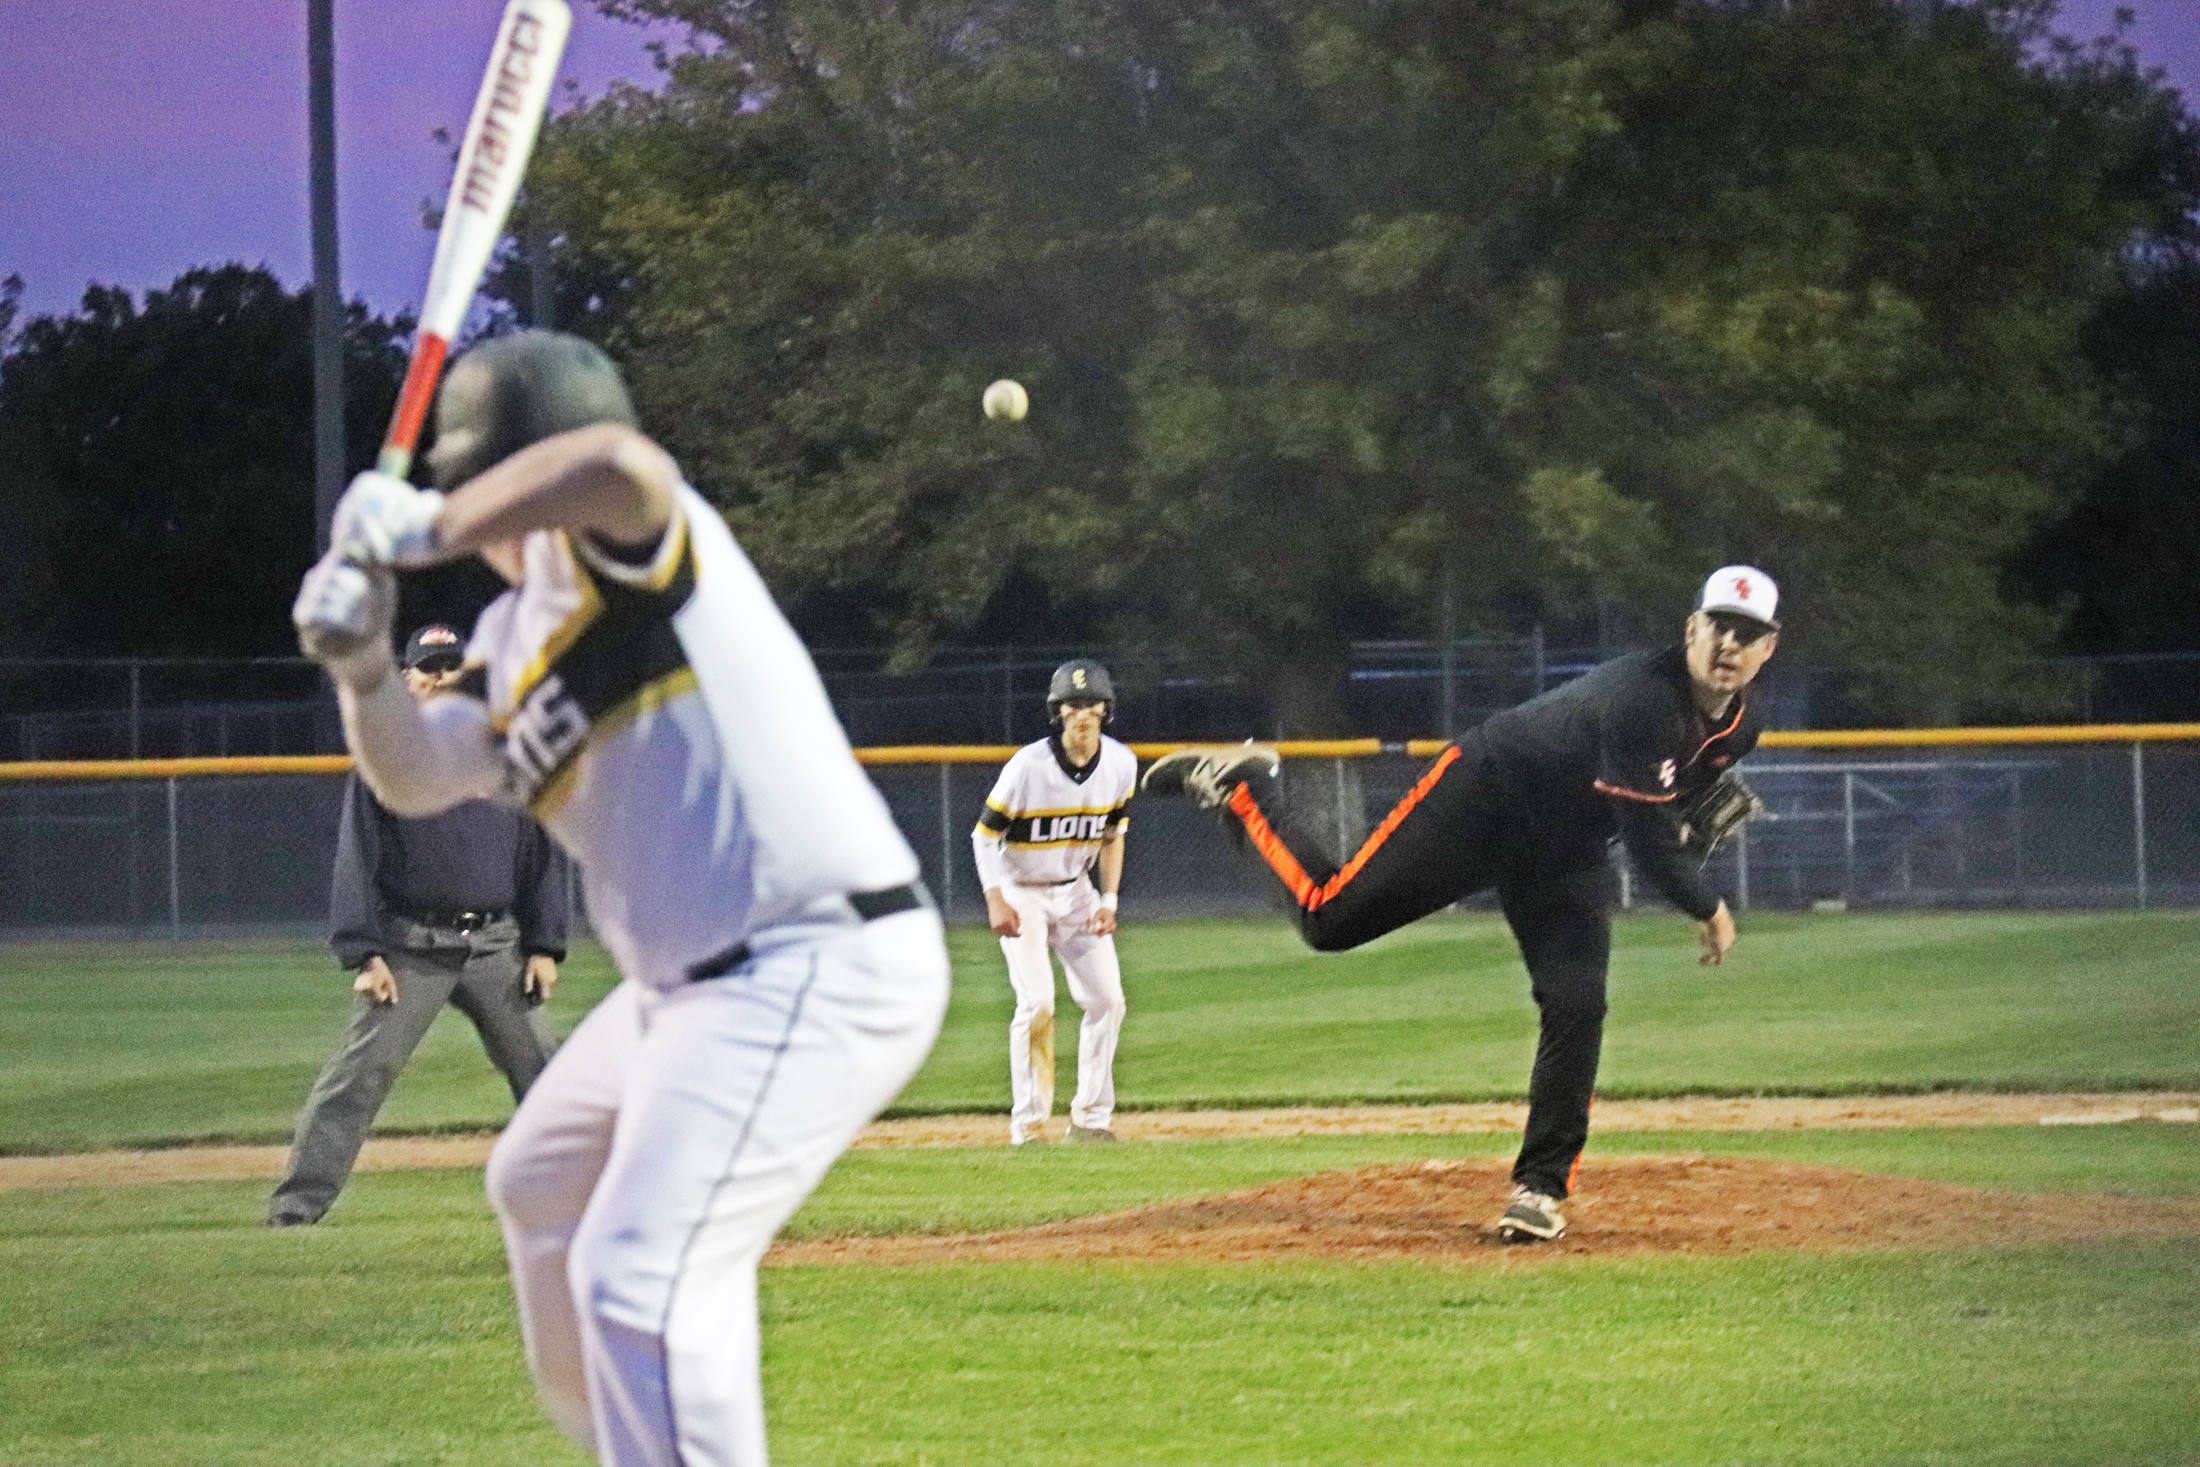 Lions rally past Comets, 14-4, in baseball opener